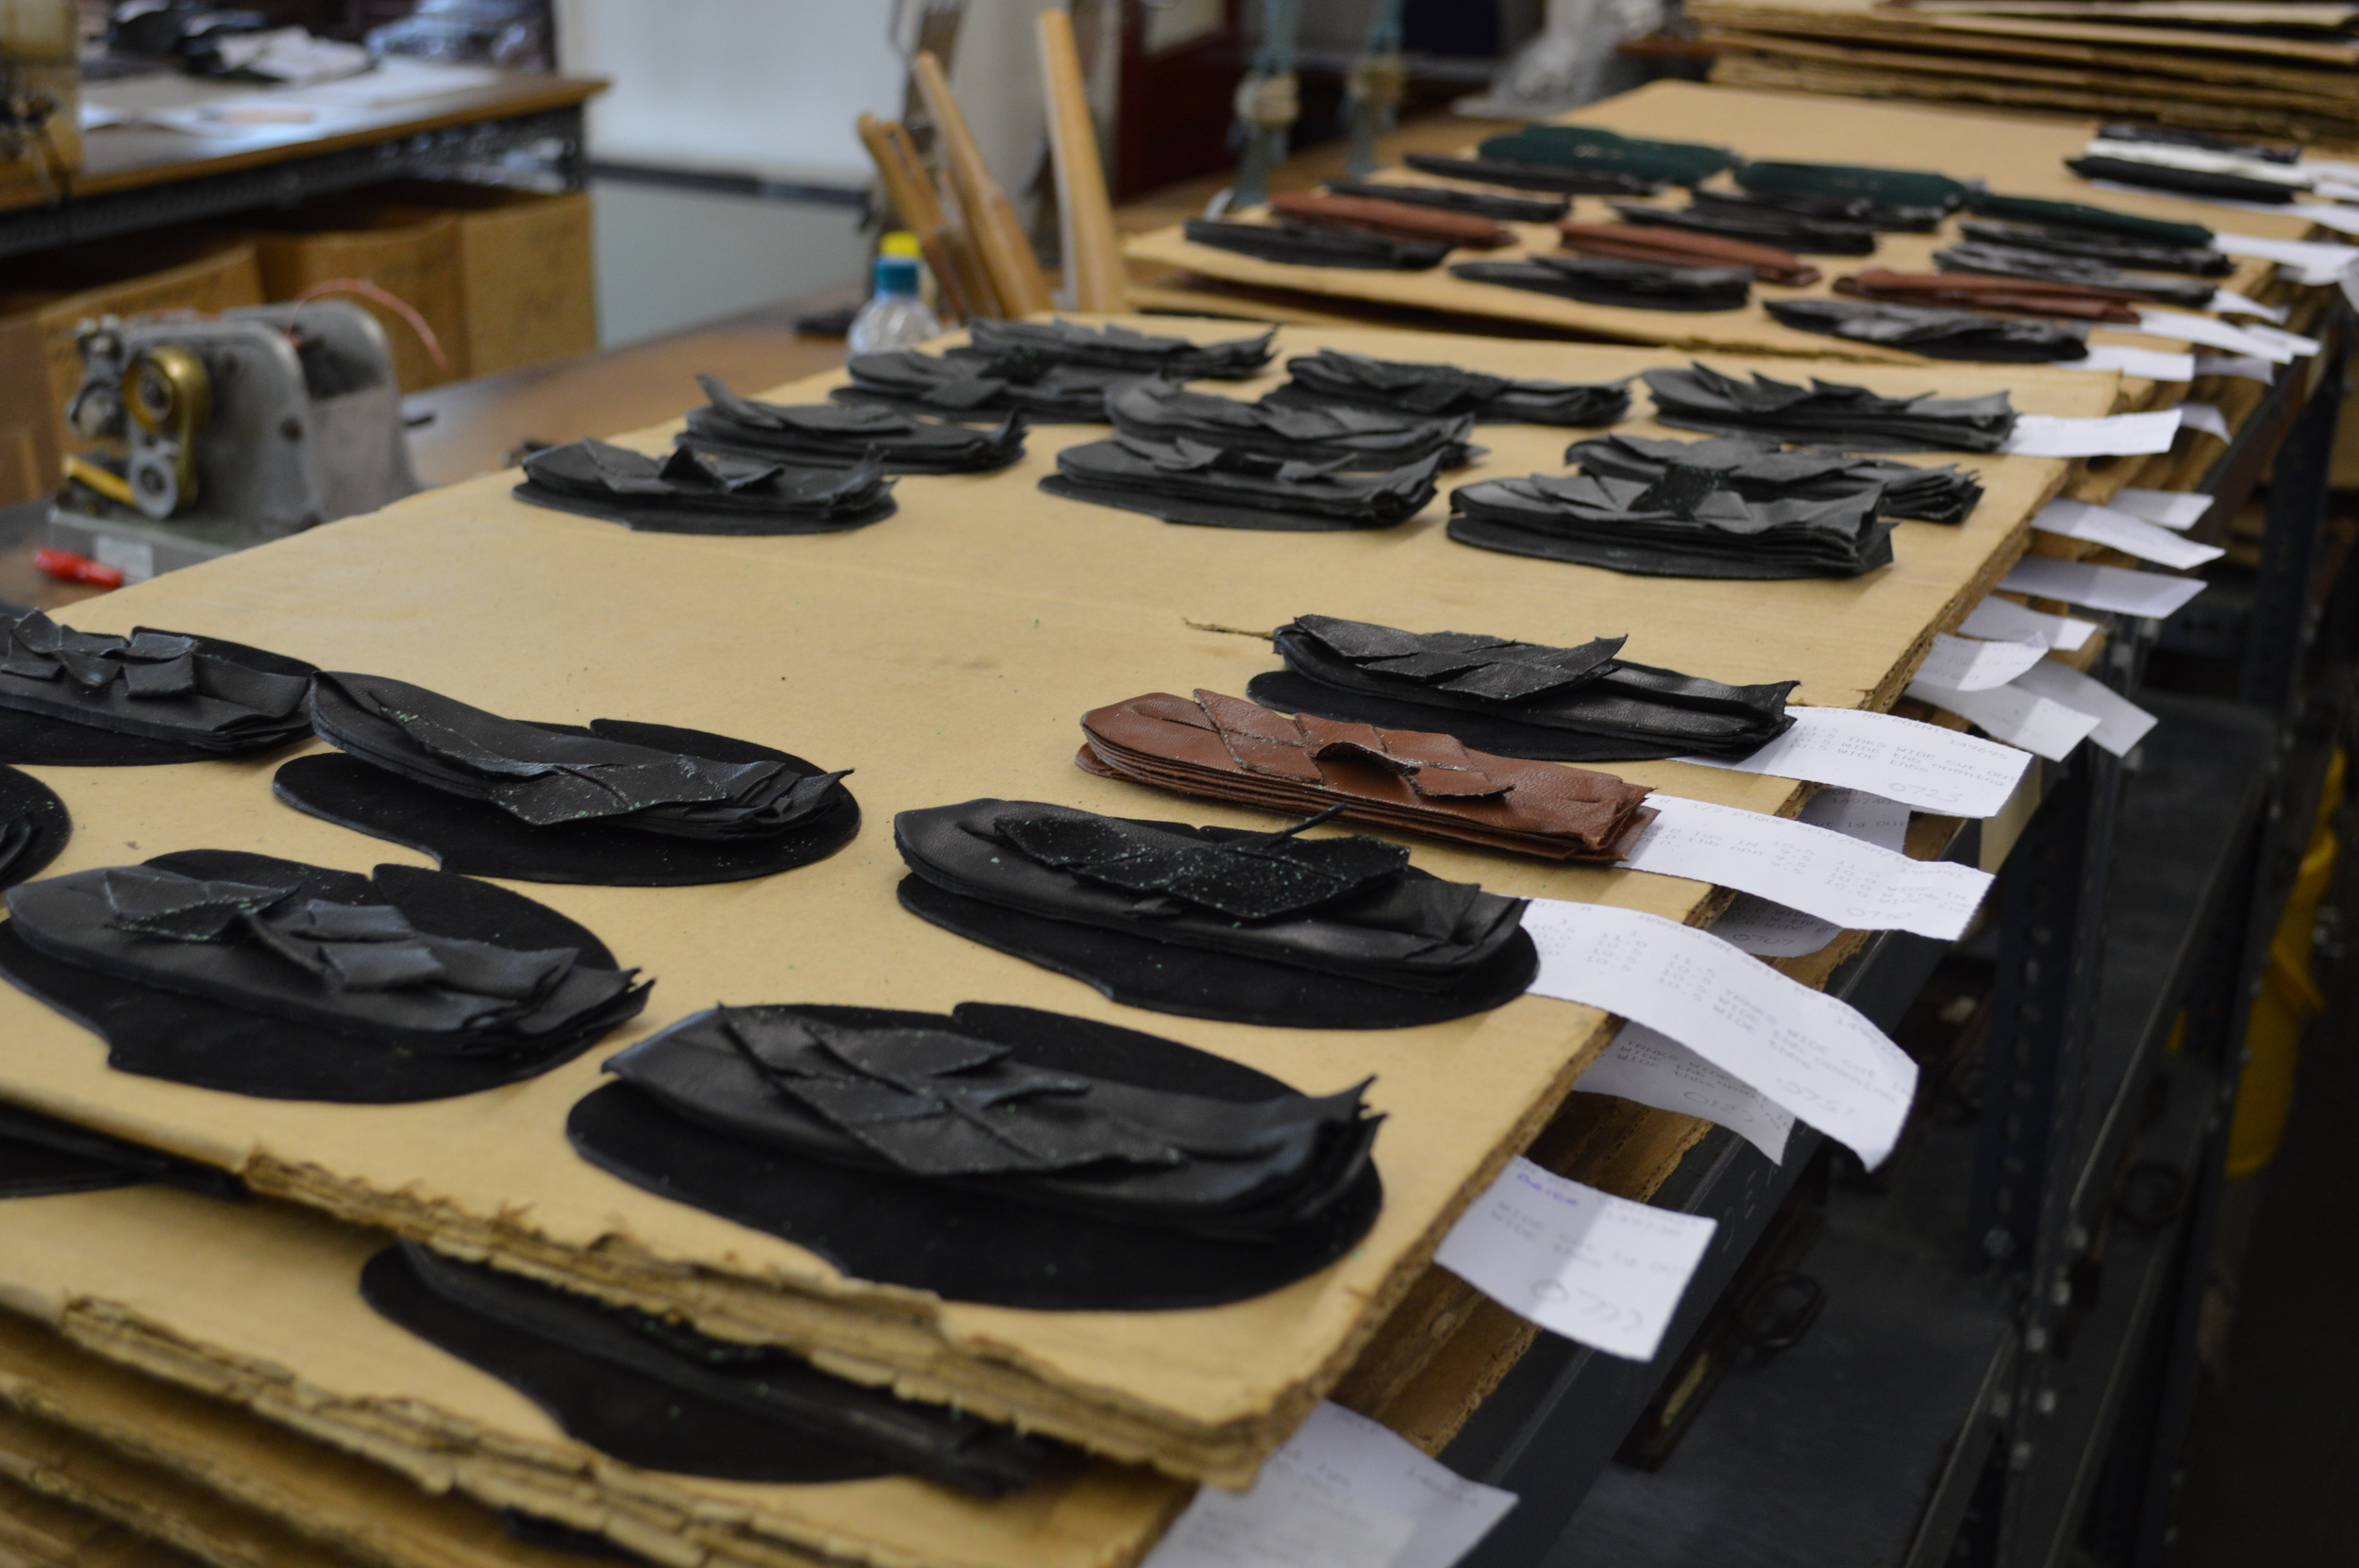 FitzGerald Morrell's UK workshop employs 3rd- and 4th-generation master glovemakers